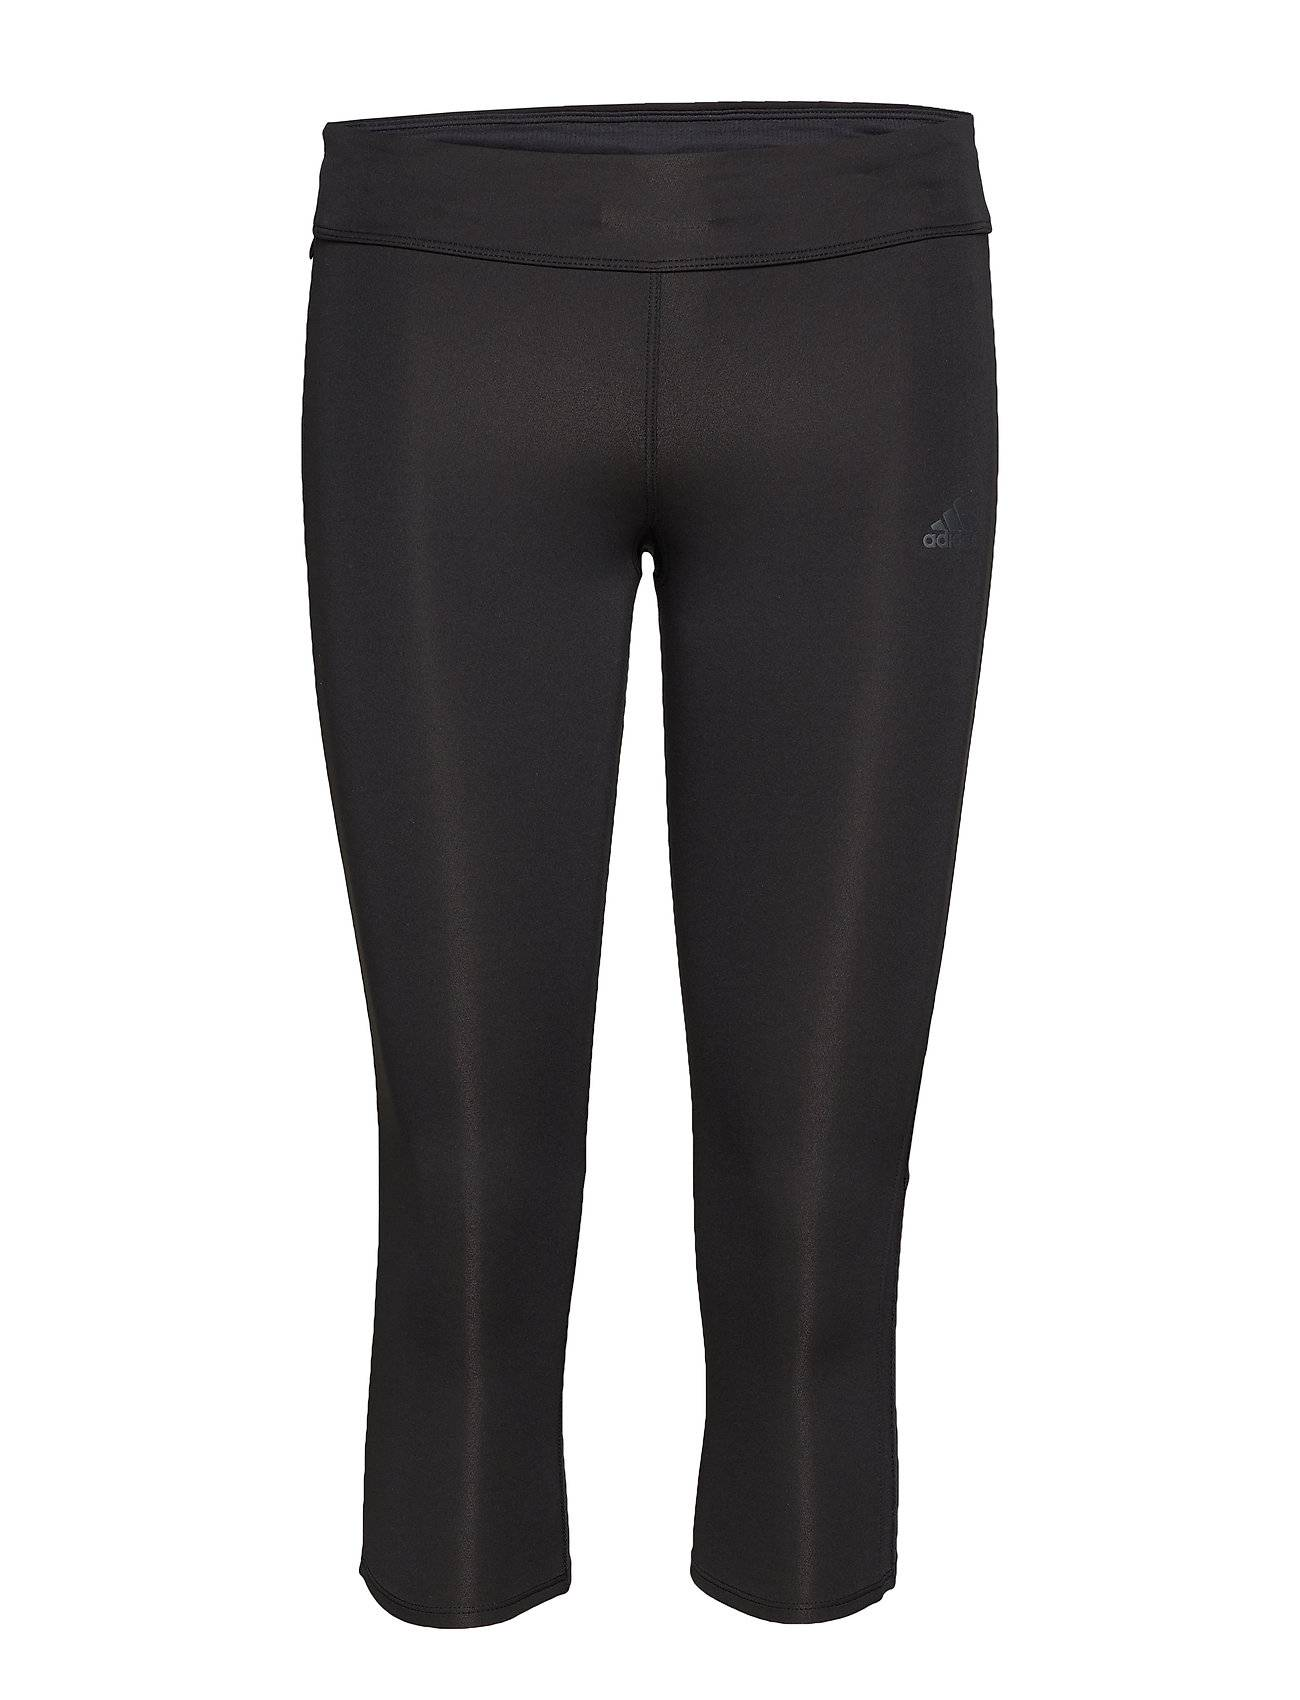 Image of adidas Performance Response Tight Running/training Tights Musta Adidas Performance